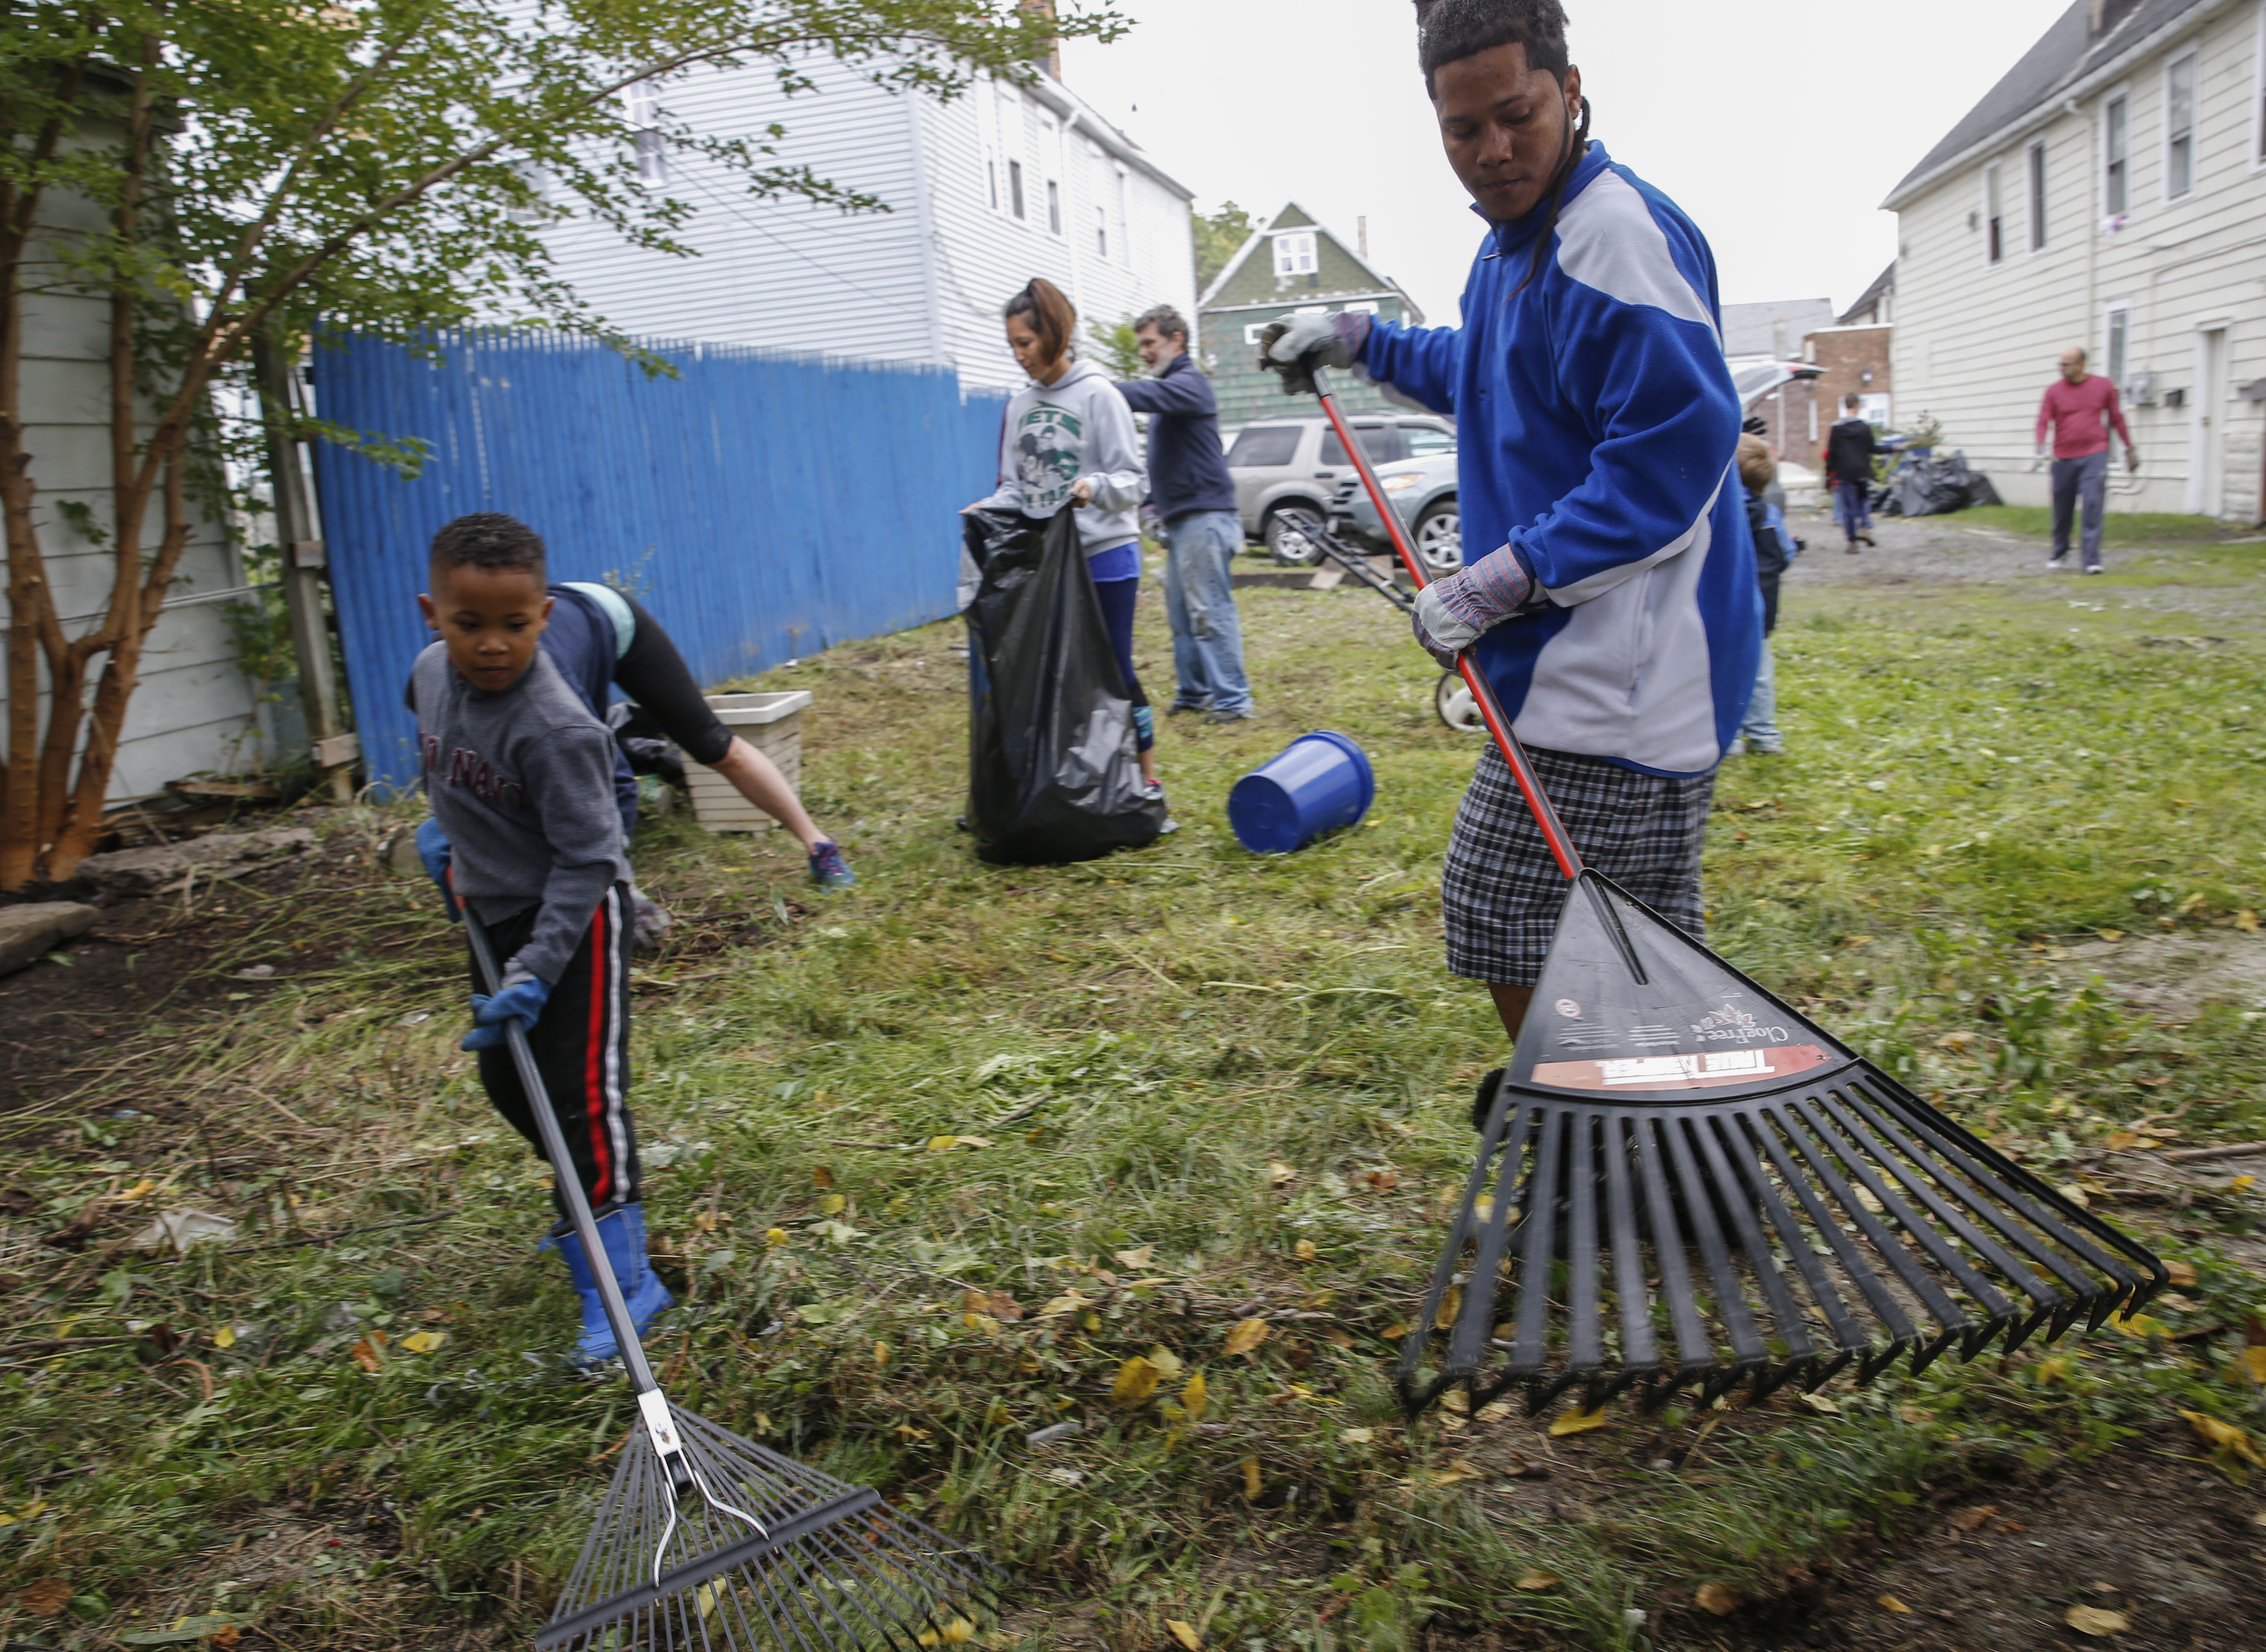 Diego Alexander, right, a refugee from Columbia, and his 6-year-old son Joel Sebastian, 6, rake up yard debris while helping a group of volunteers from Congregation Shir Shalom and Boy Scouts help Jewish Family Services clean up a the lot next to an apartment building where four refugee families, including Alexander's, live on Bailey Avenue, Sunday, Oct. 9, 2016. The families were relocated to this apartment building after a fire tore through the apartment they were originally settled into so these families have had an extra hard time since arriving in Buffalo.  (Derek Gee/Buffalo News)